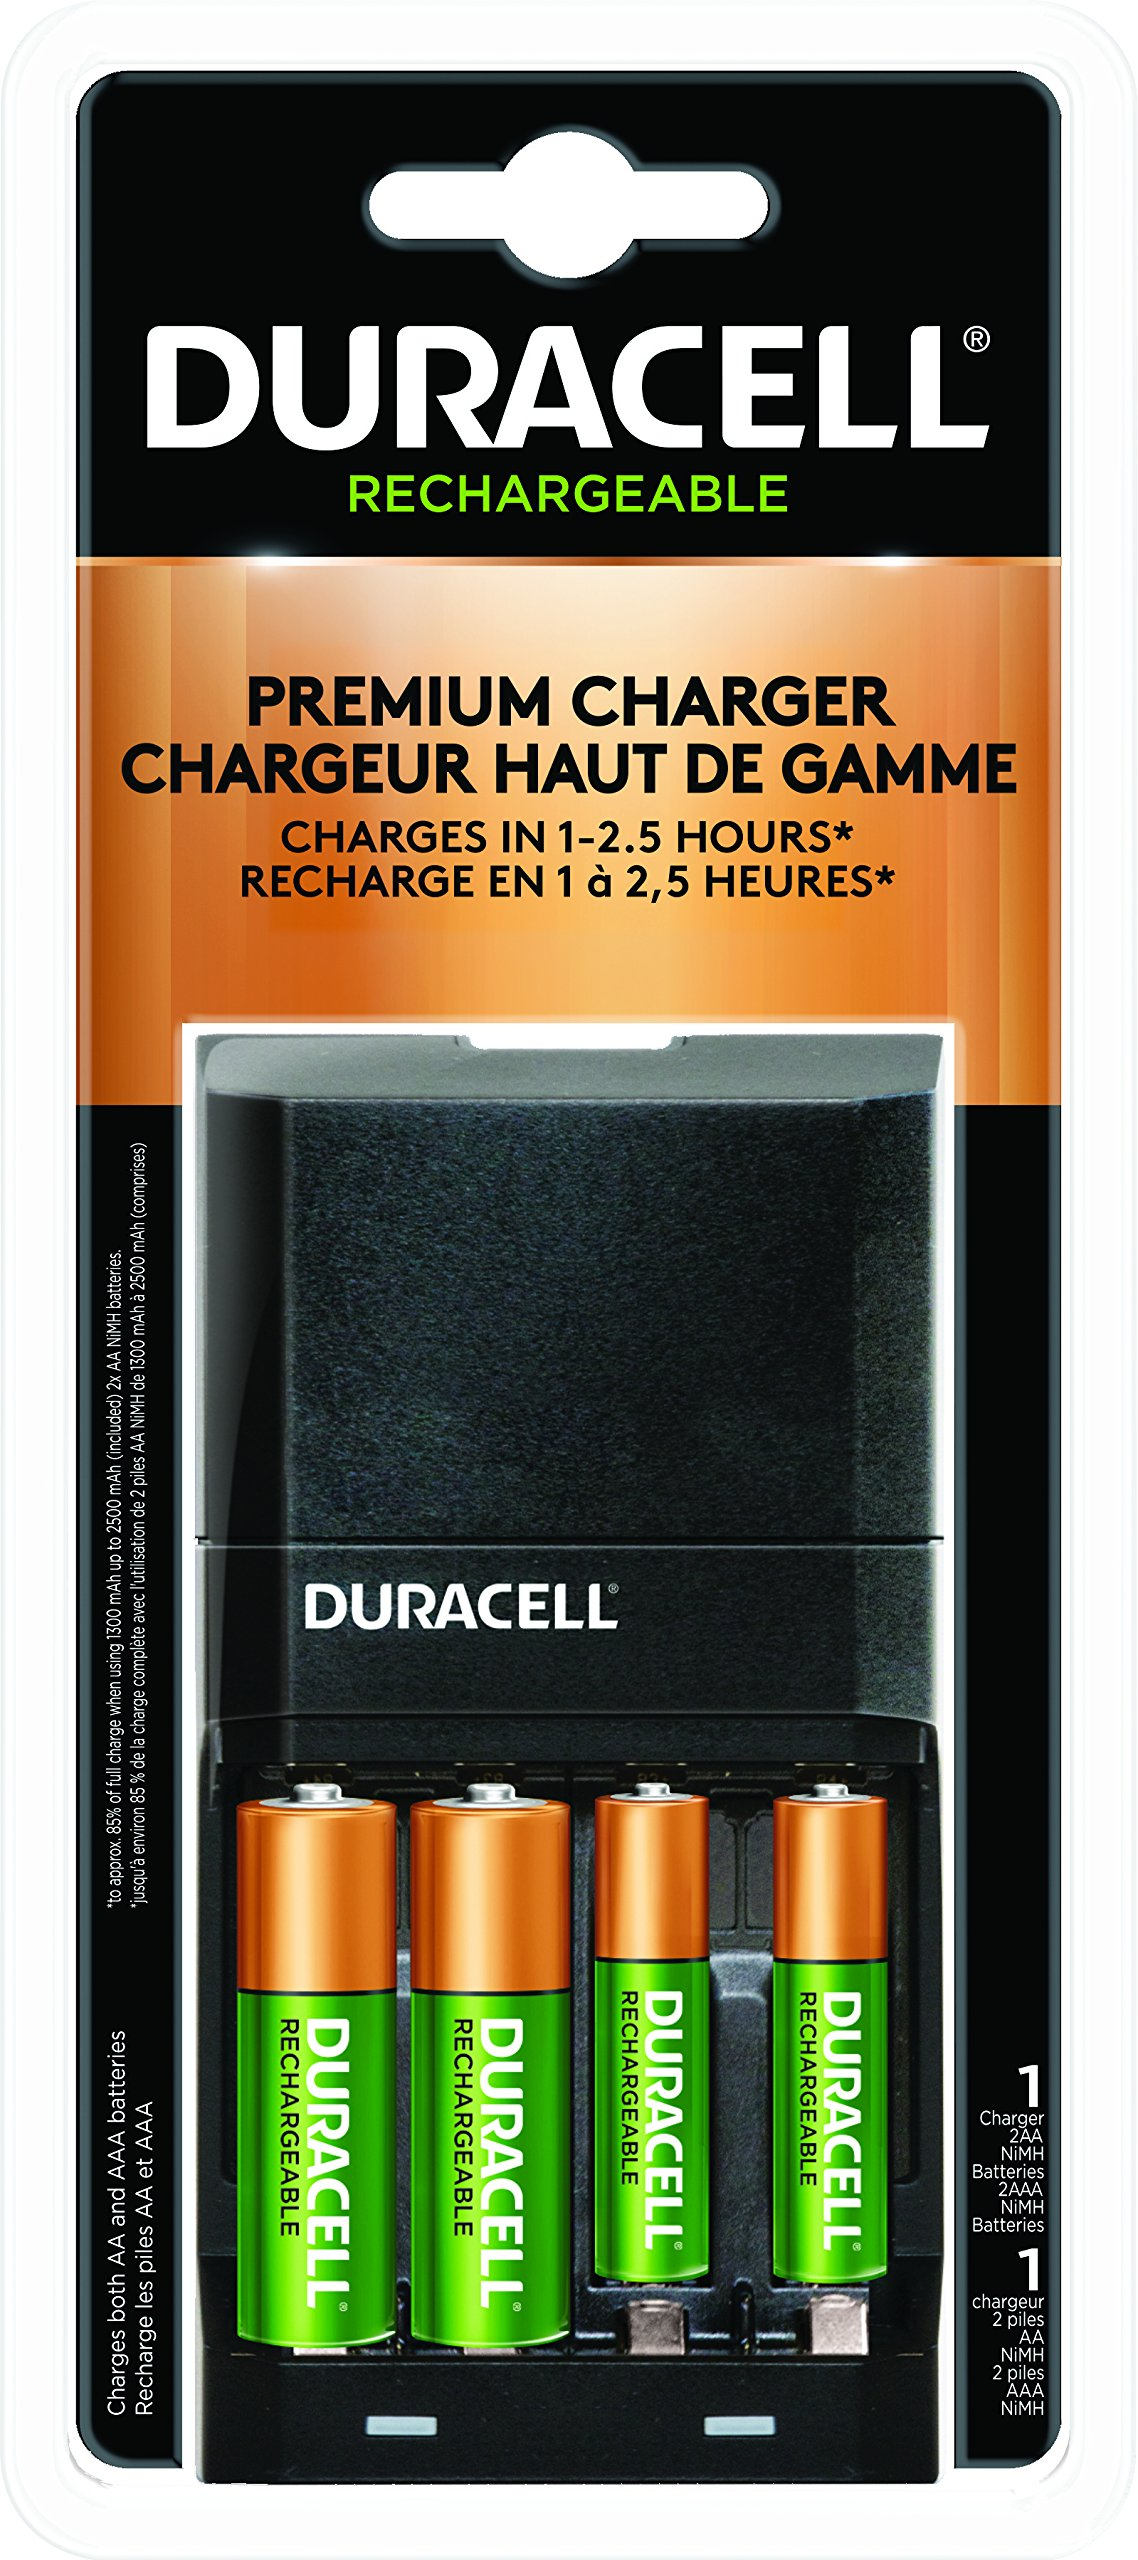 Duracell Battery Charger 4000 With 2AA / 2AAA - 1-2.5 hrs